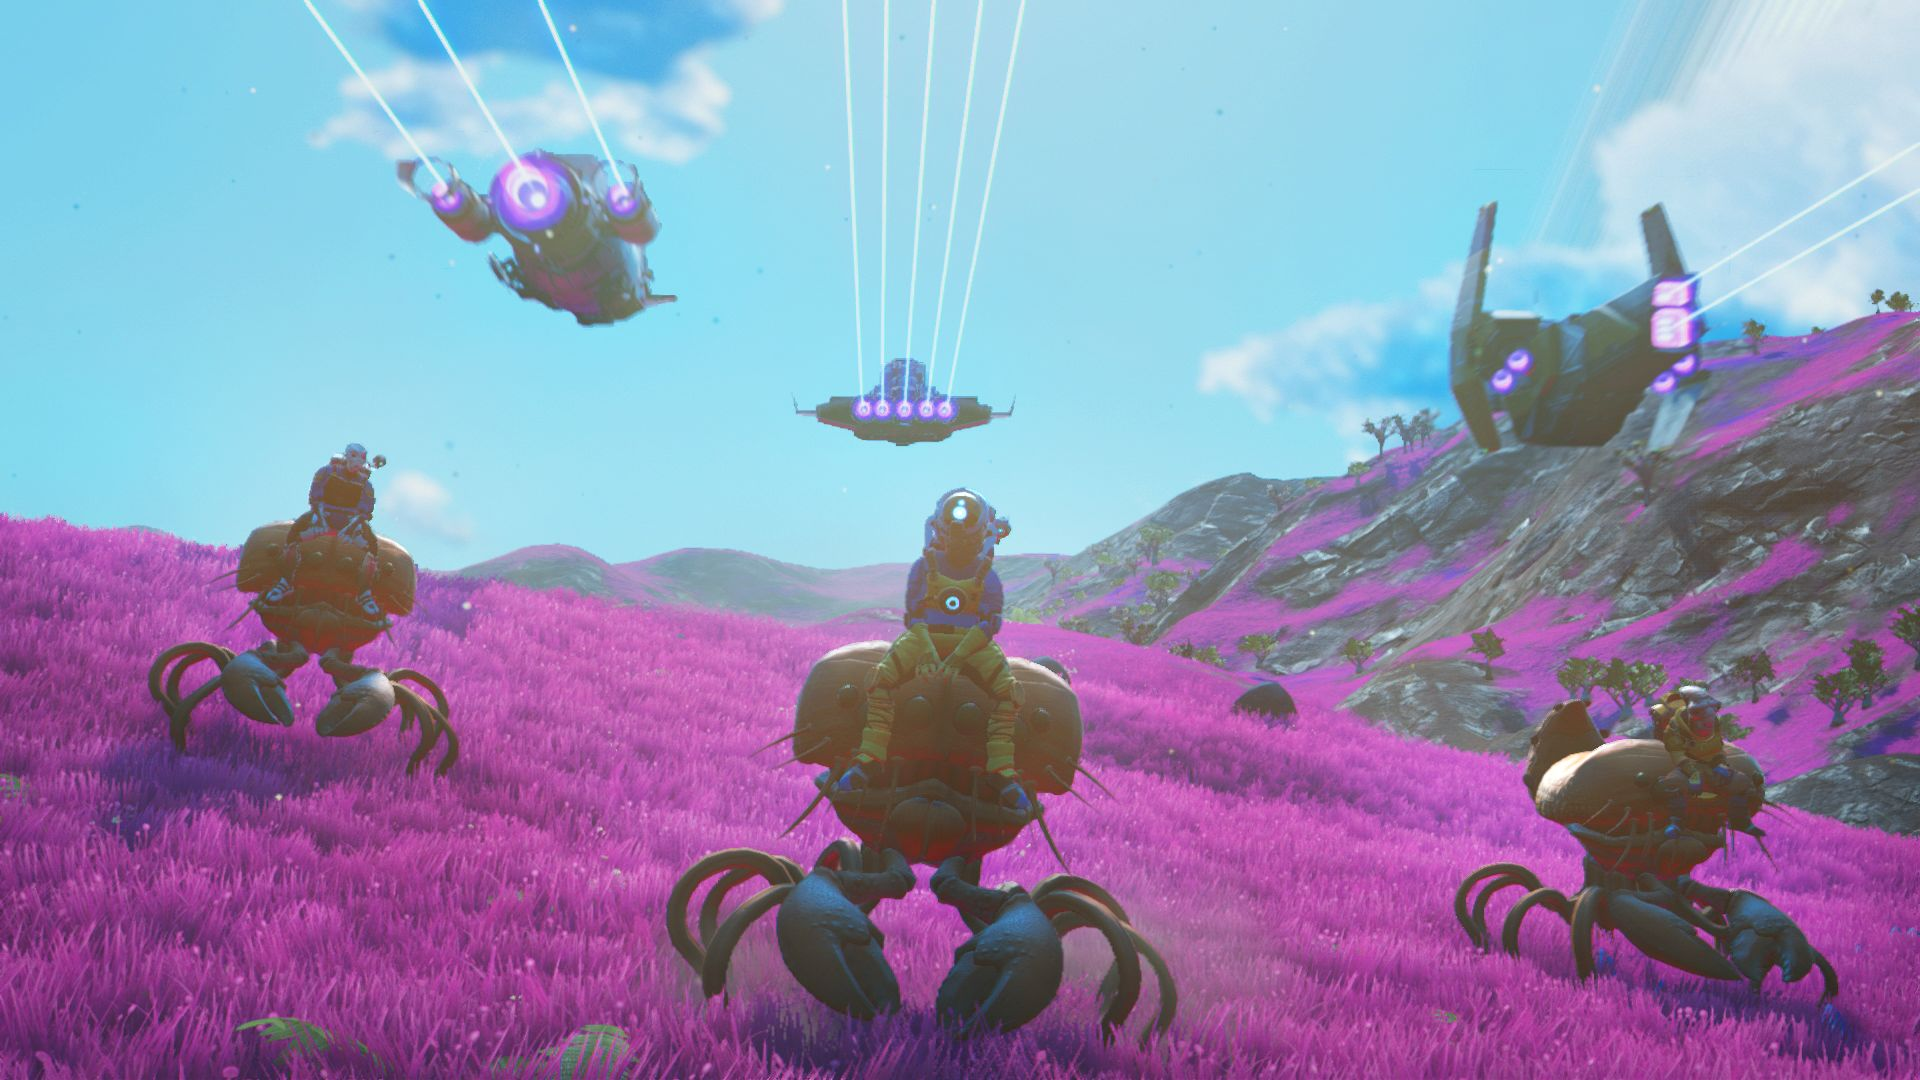 Beyond lets you turn No Man's Sky into Satisfactory, Stardew Valley, and even Rocket League